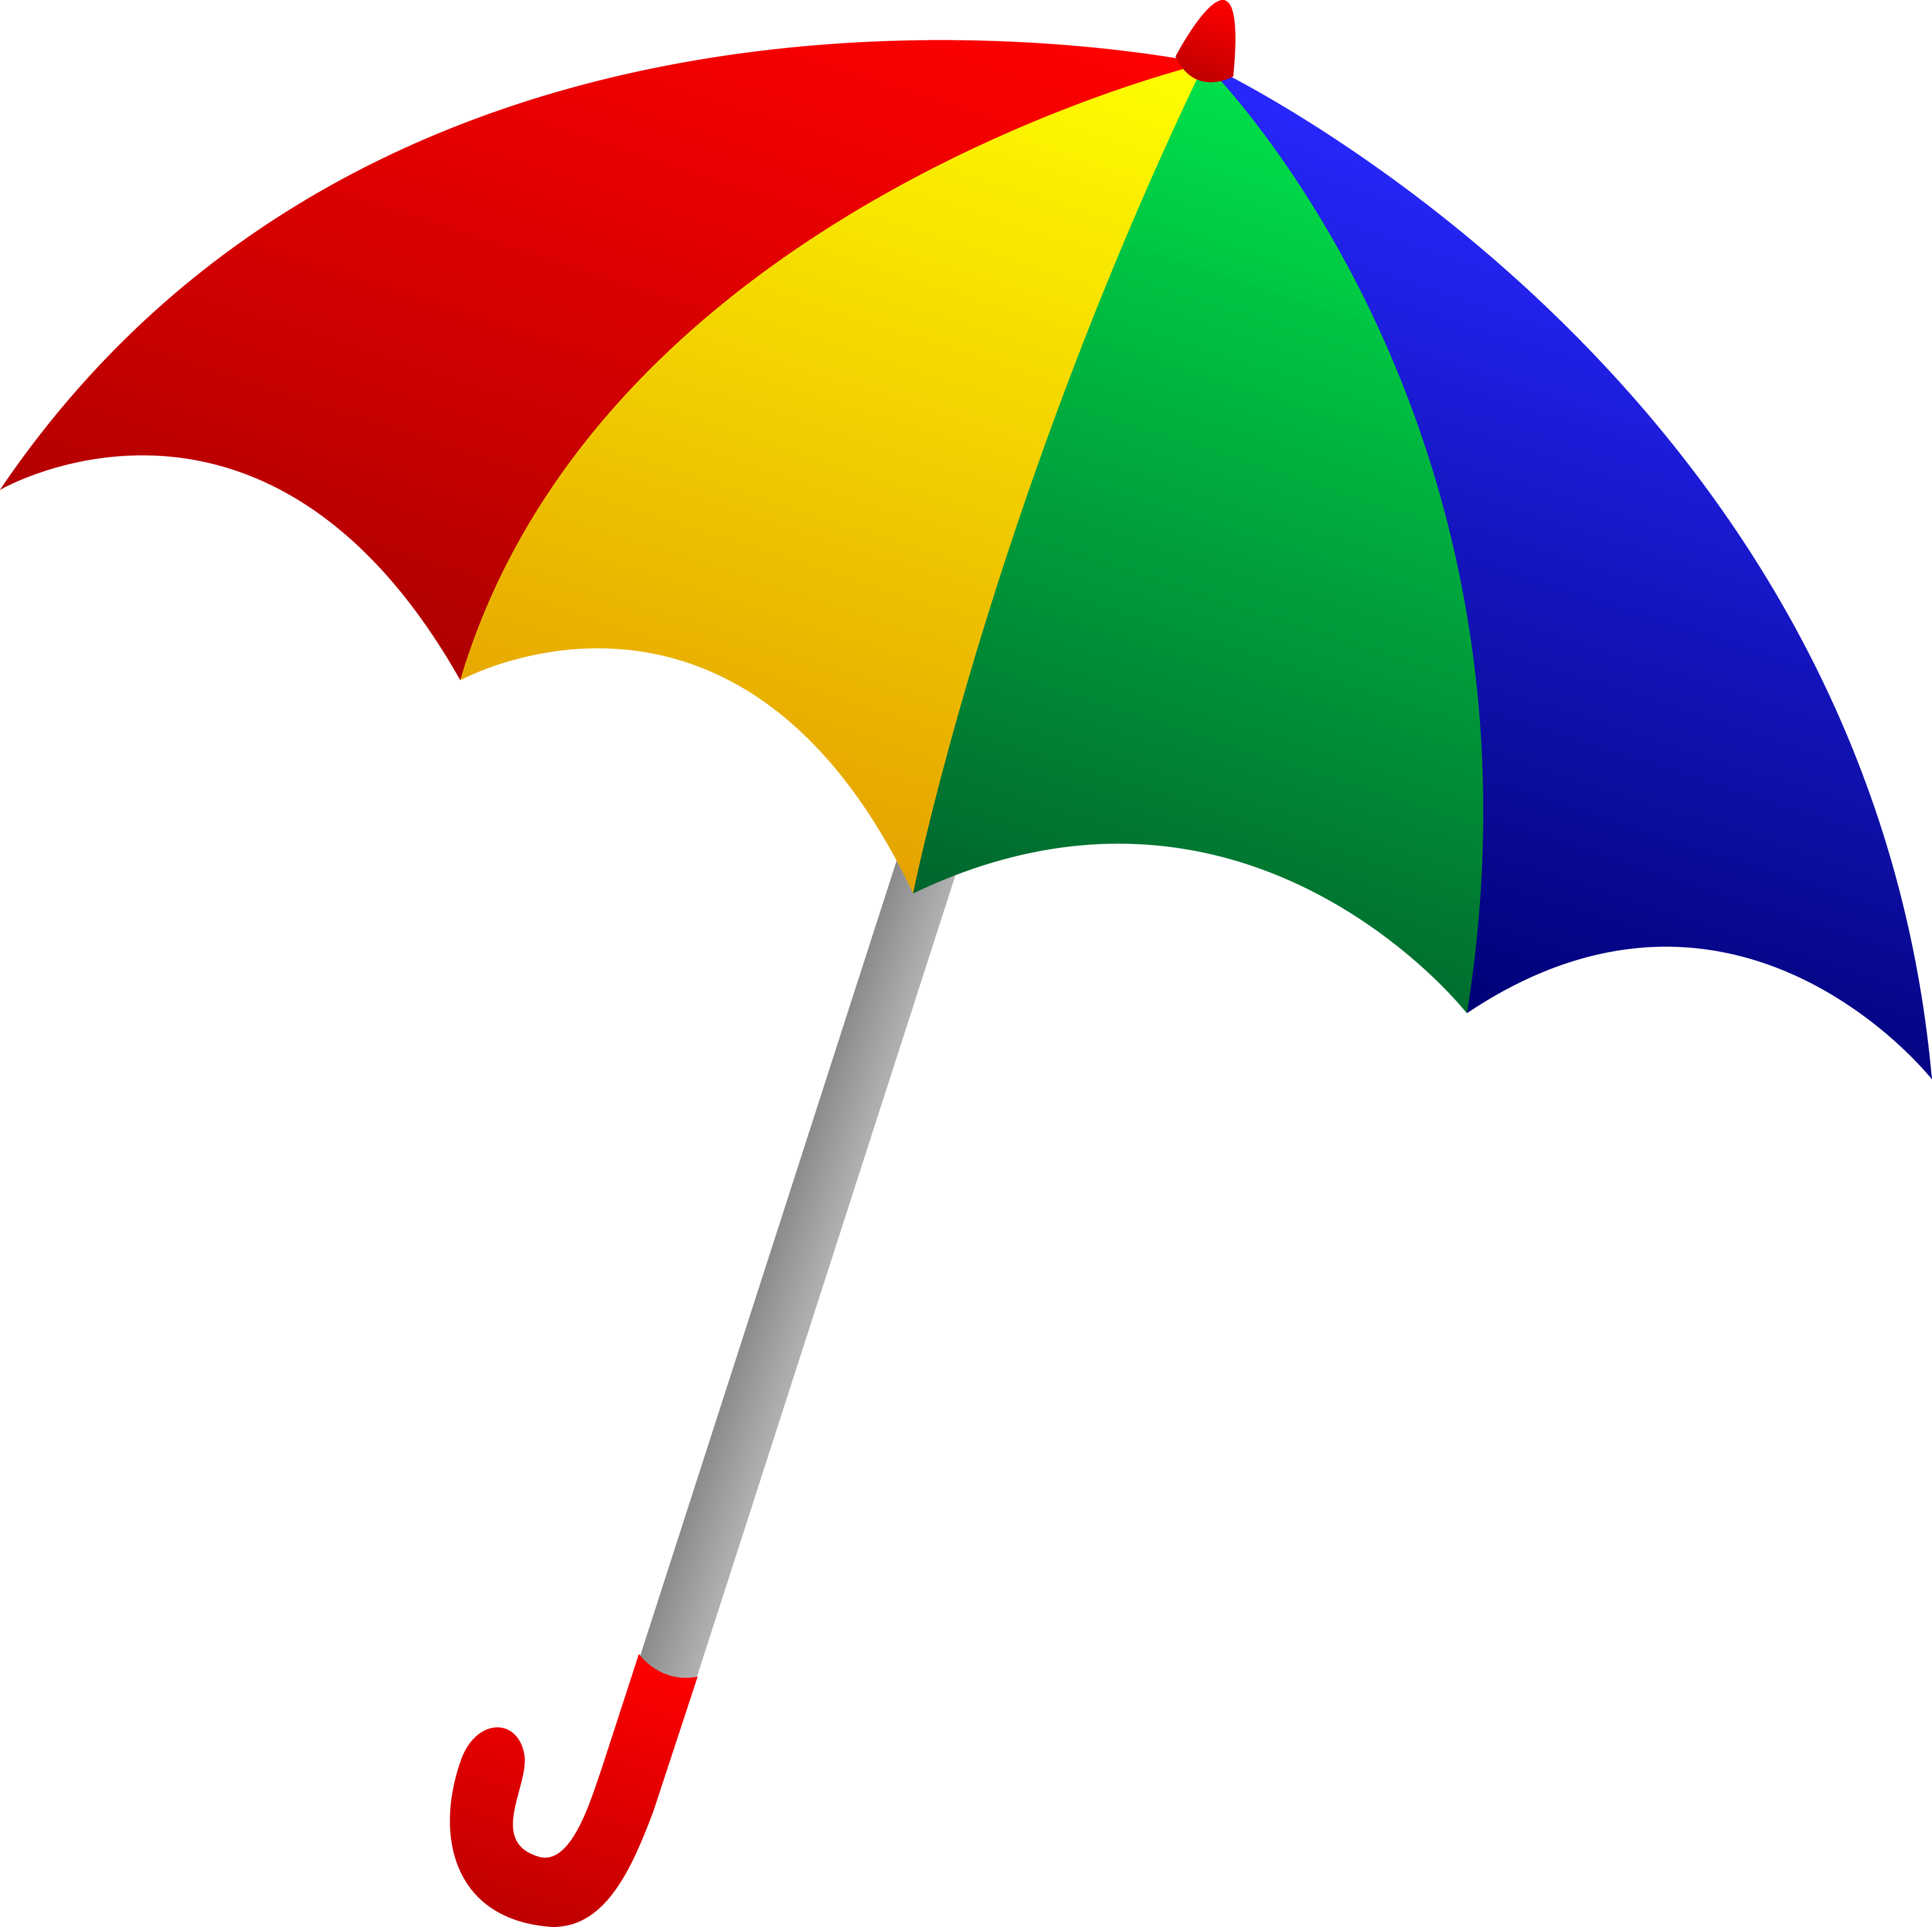 Clipart umbrella gambar. Images group with items